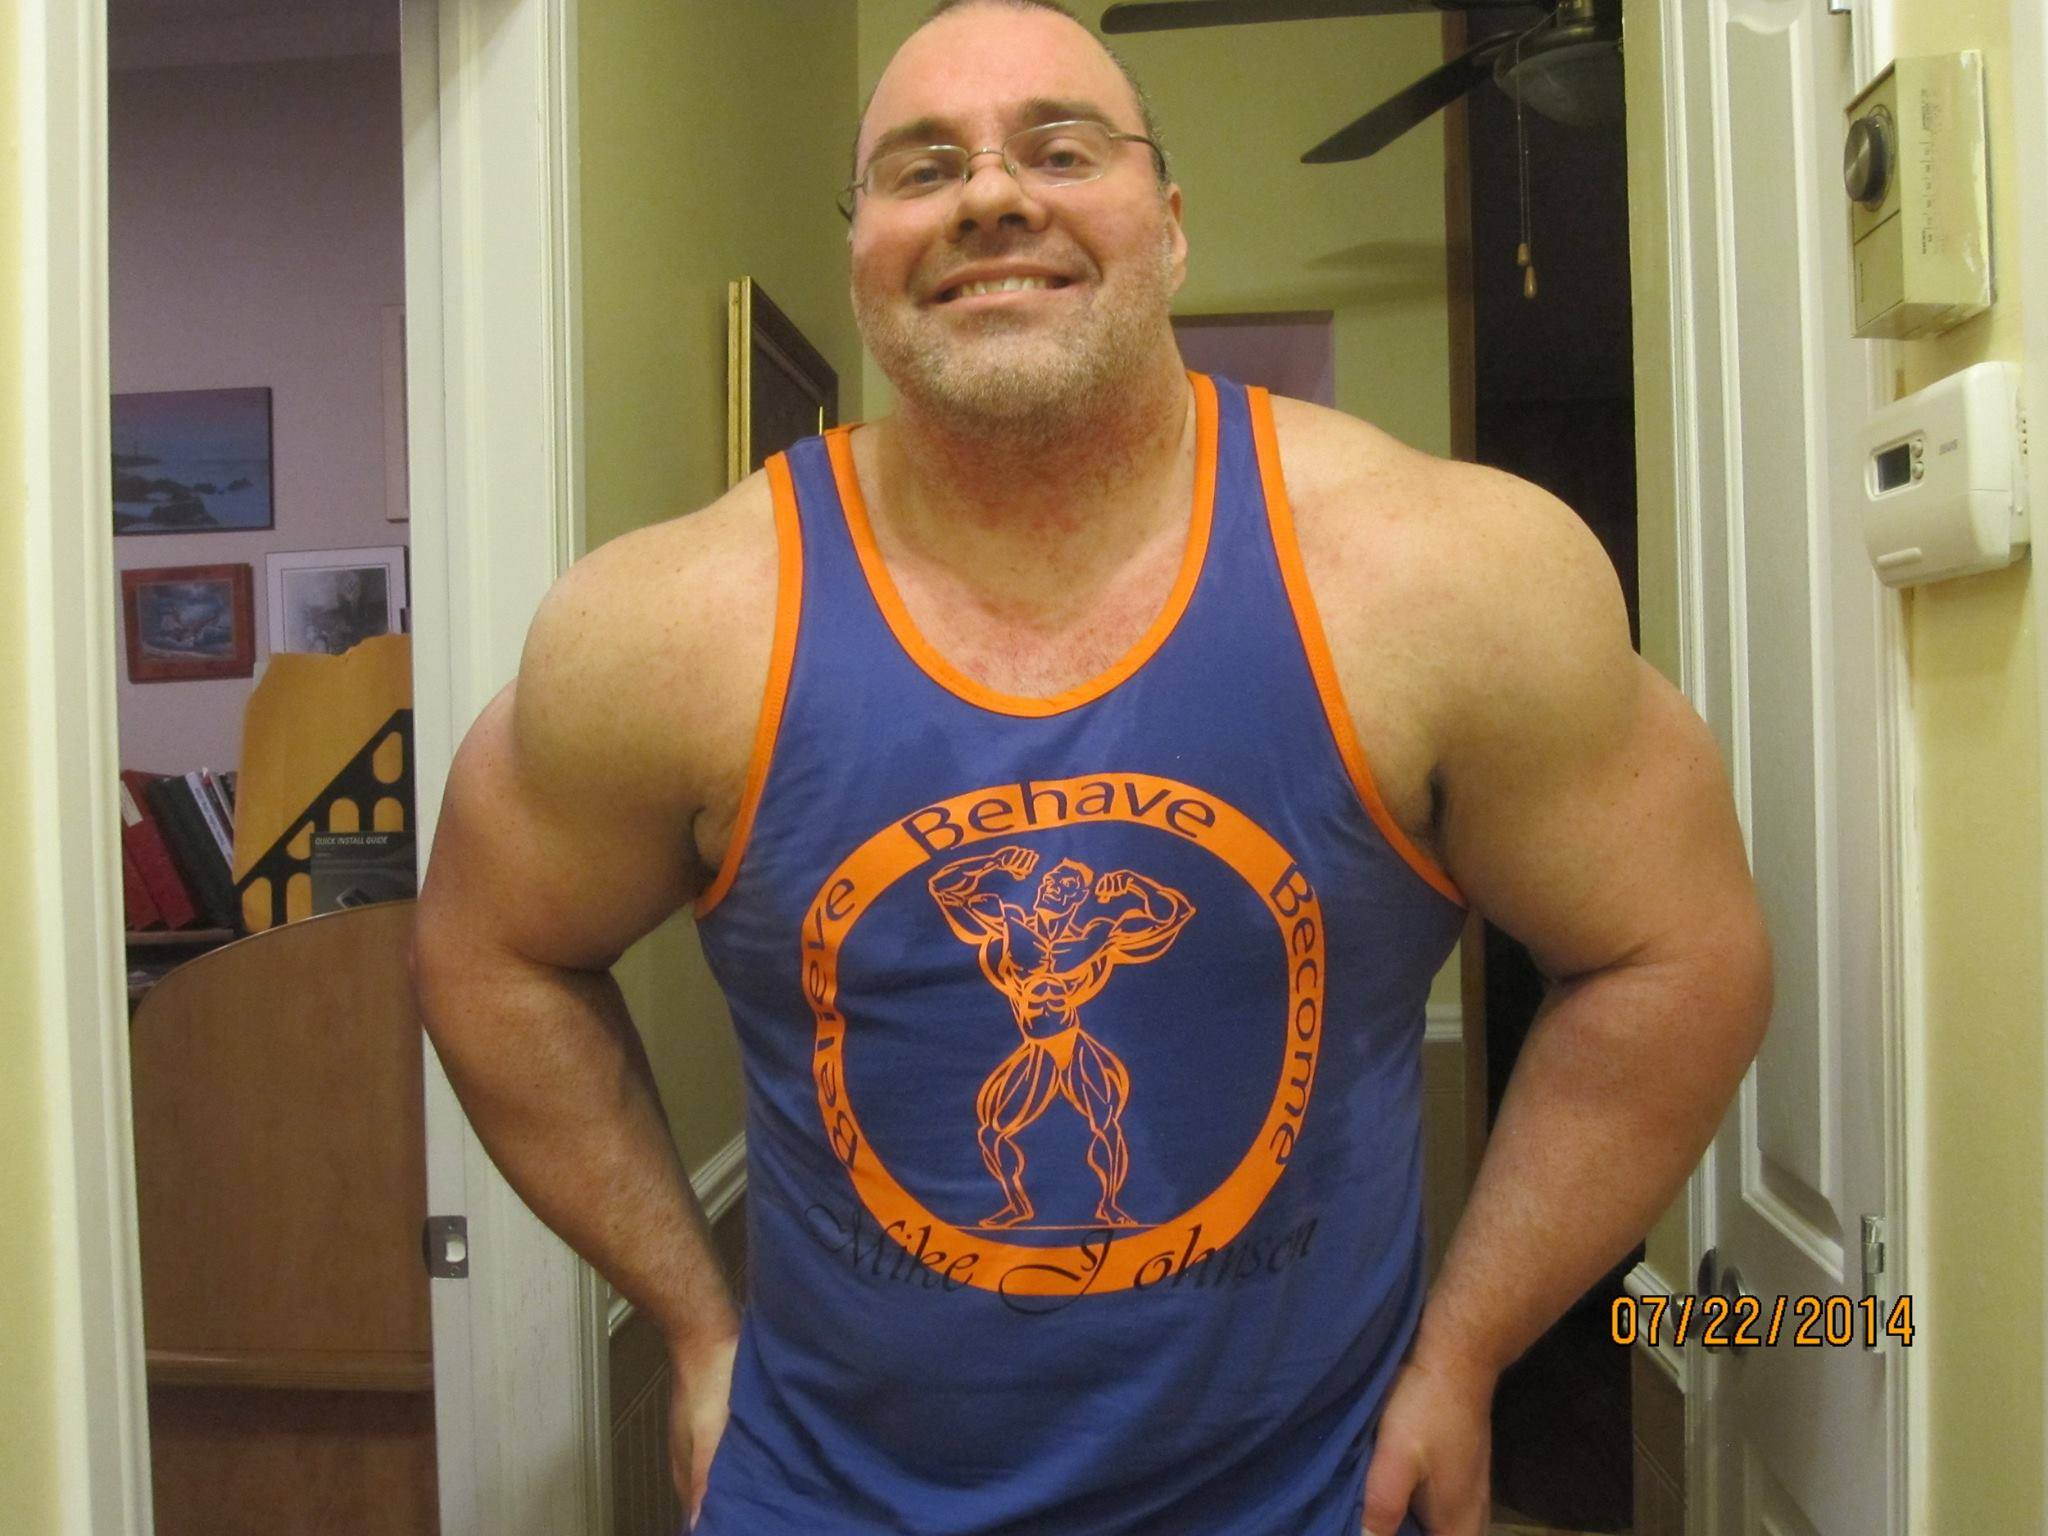 Dave new cycle anavar, deca, sustanon, cancer gym log